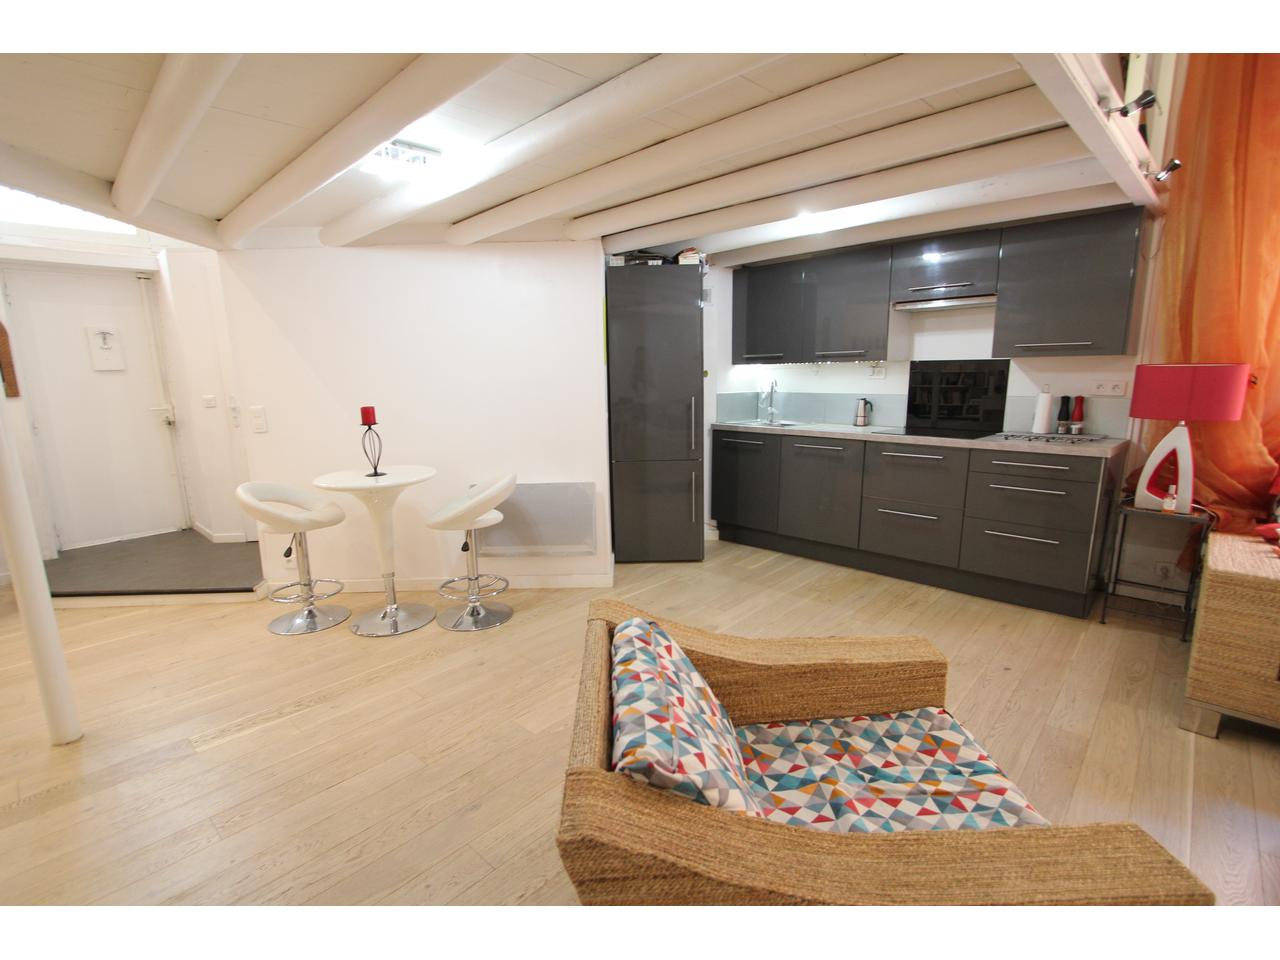 loft vieille ville ANTIBES EXCLUSIVITE 298 000 011.JPG